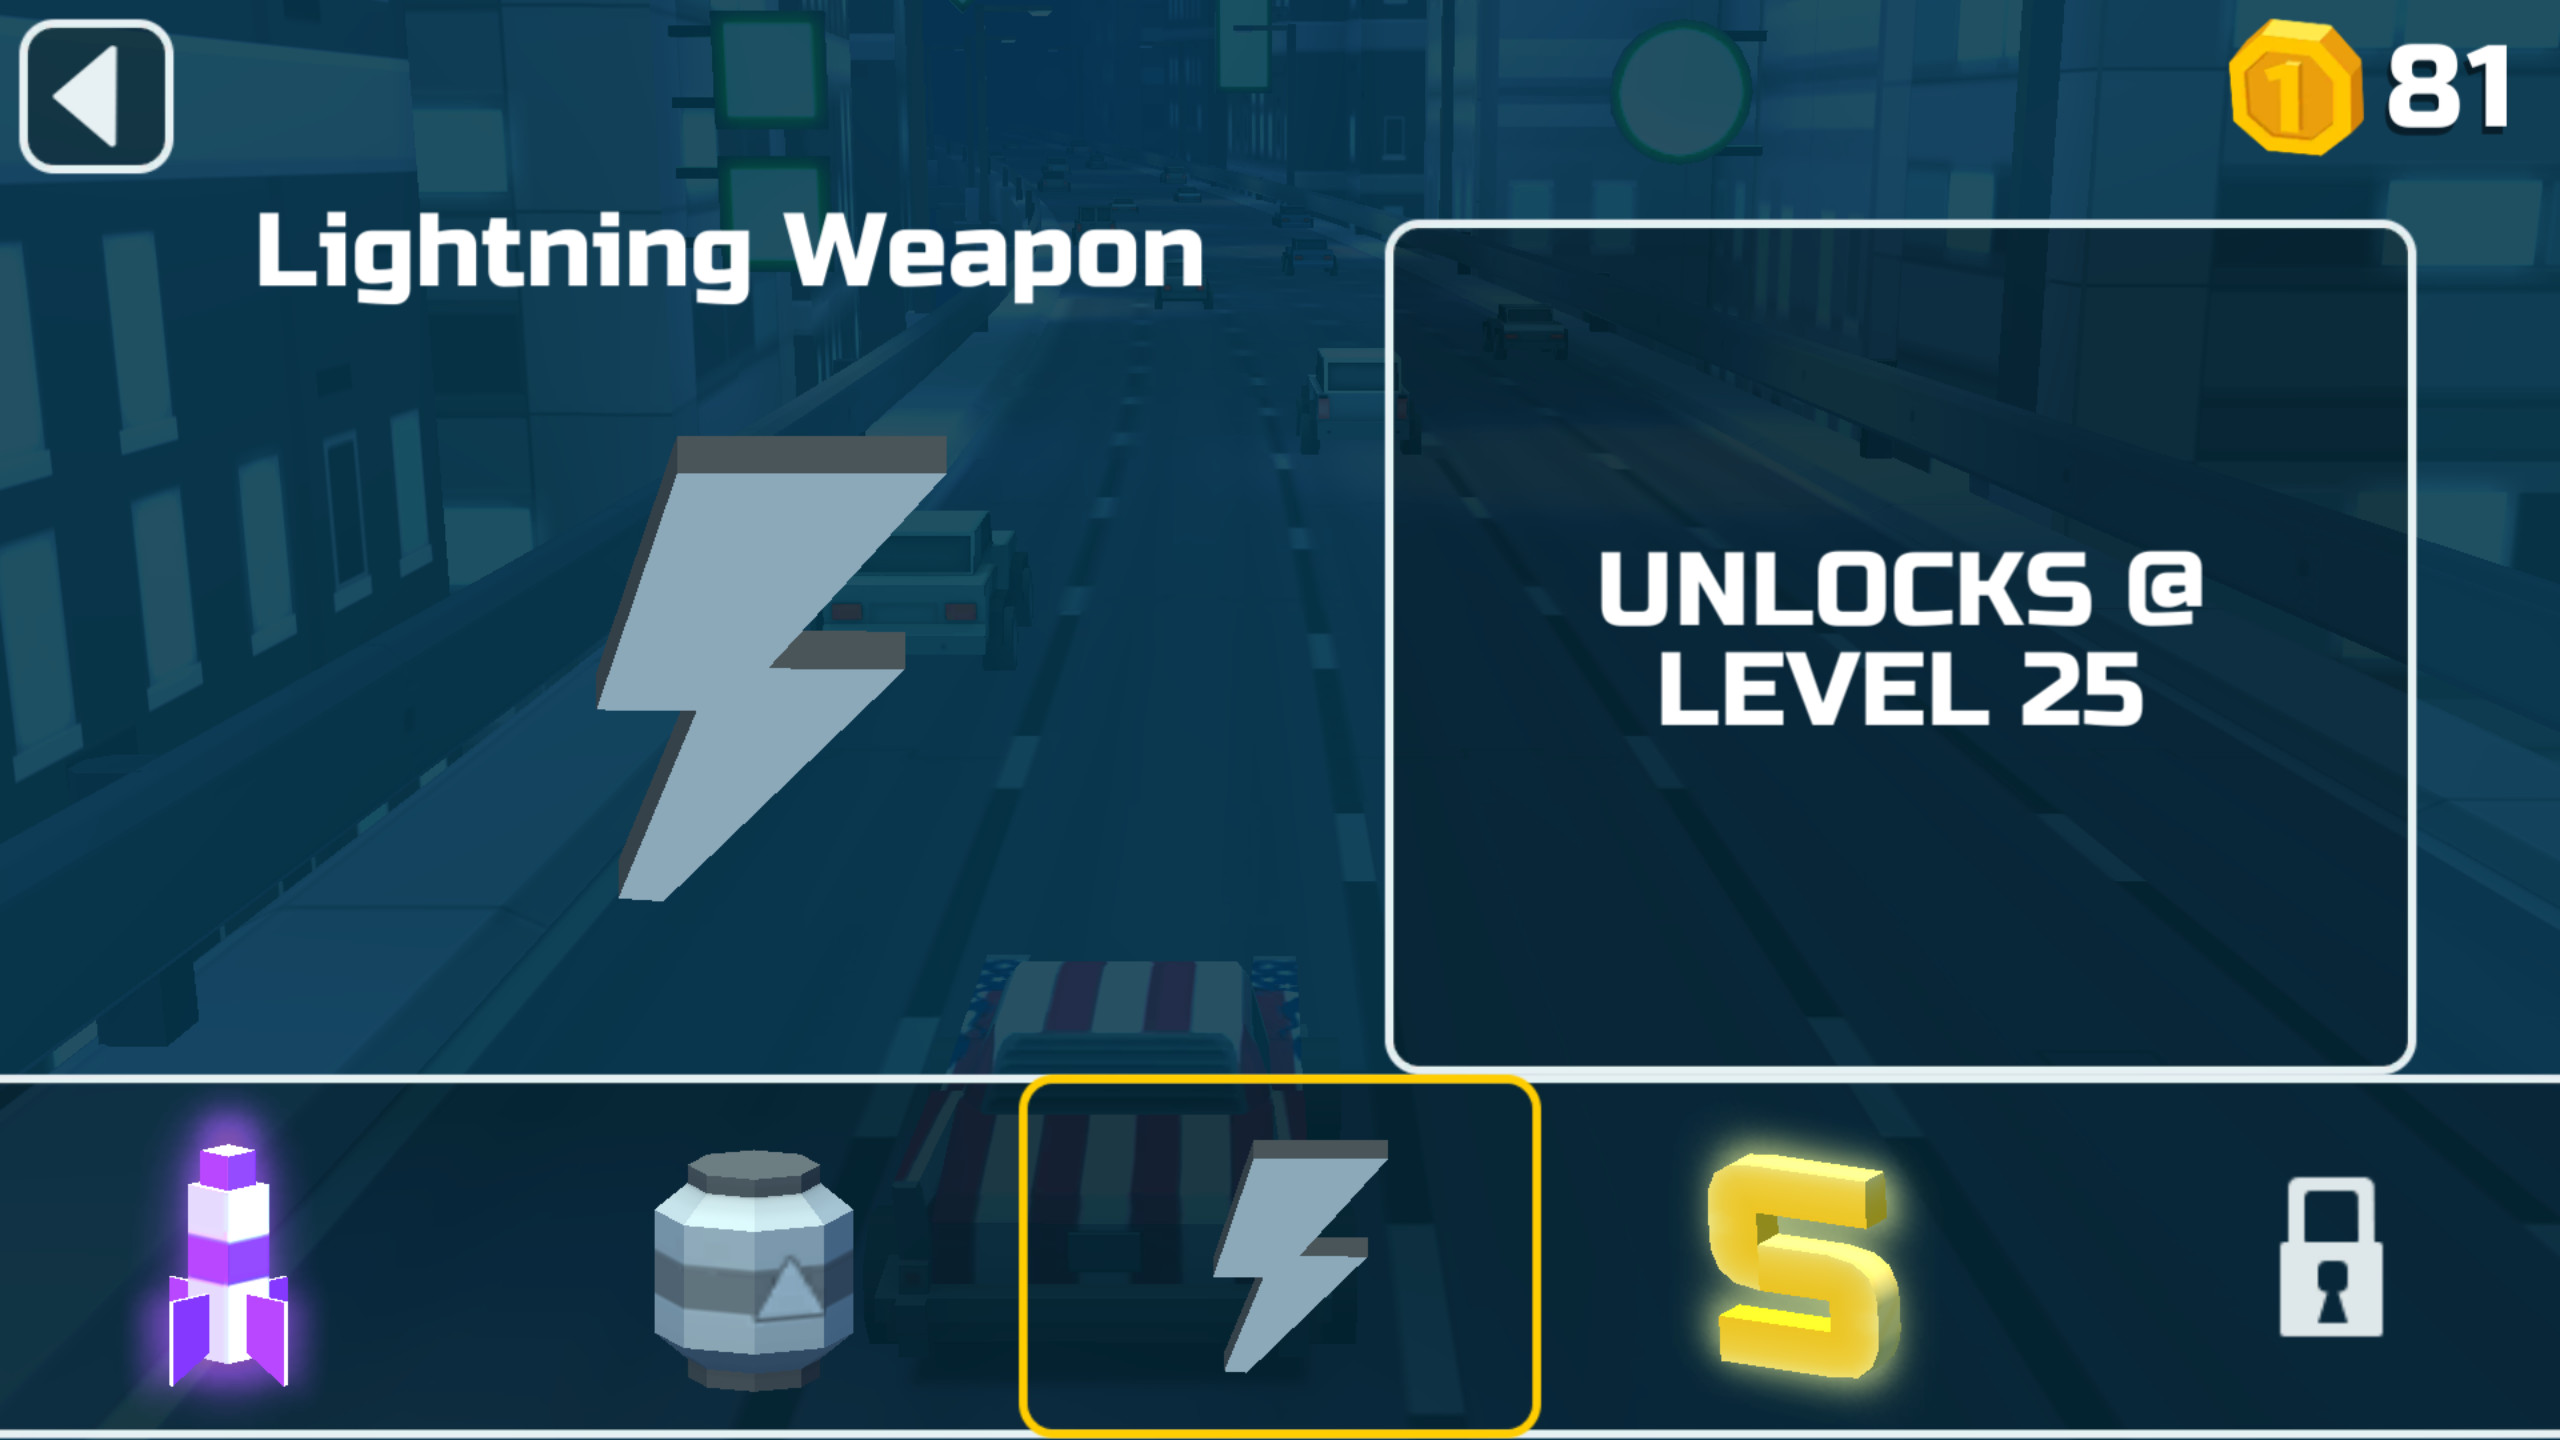 Weapon upgrade screen